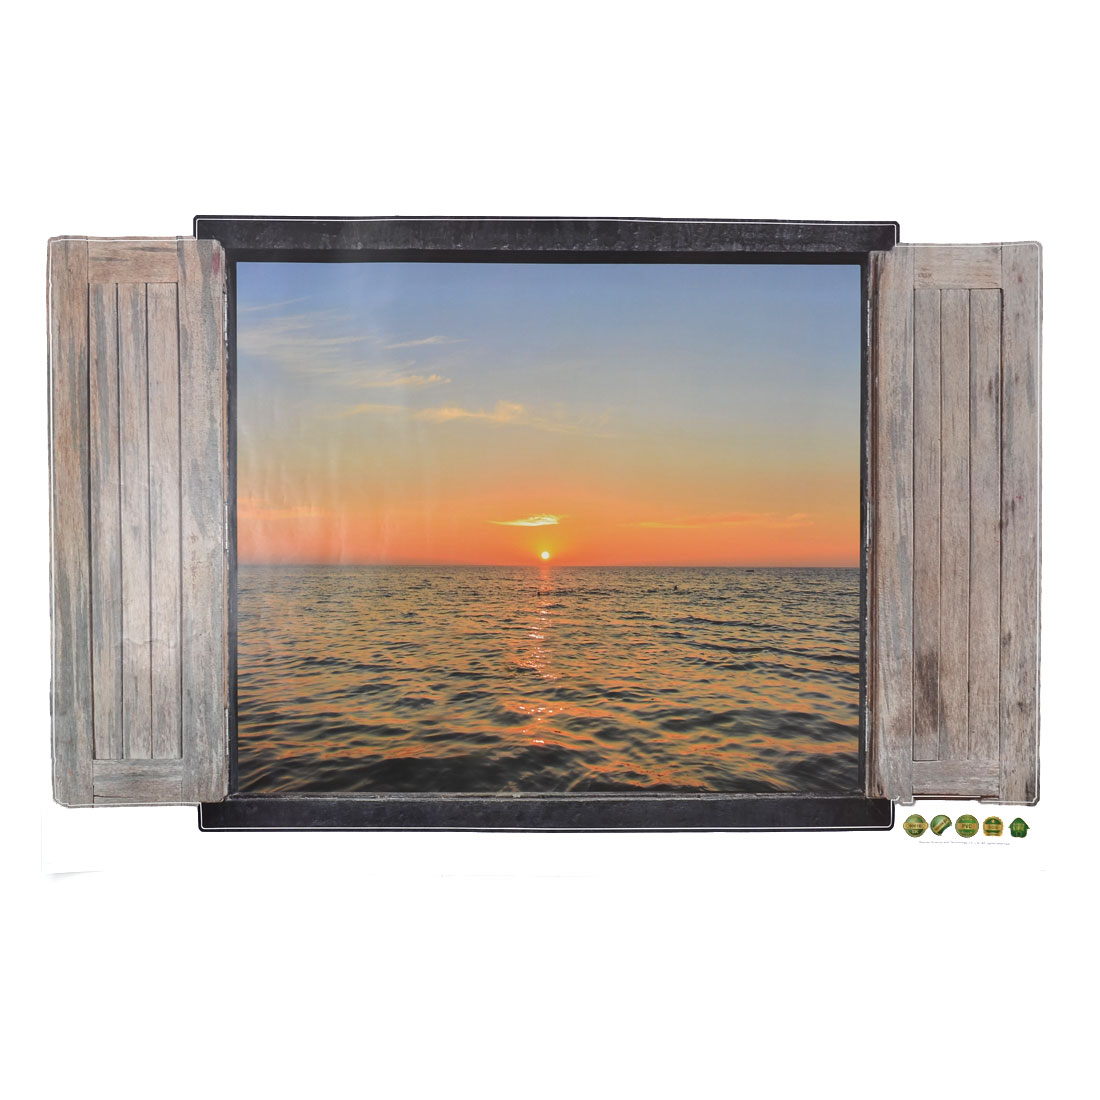 Home PVC Sea Sunset Prints DIY Ornament Wall Sticker Decal Mural 60 x 90cm